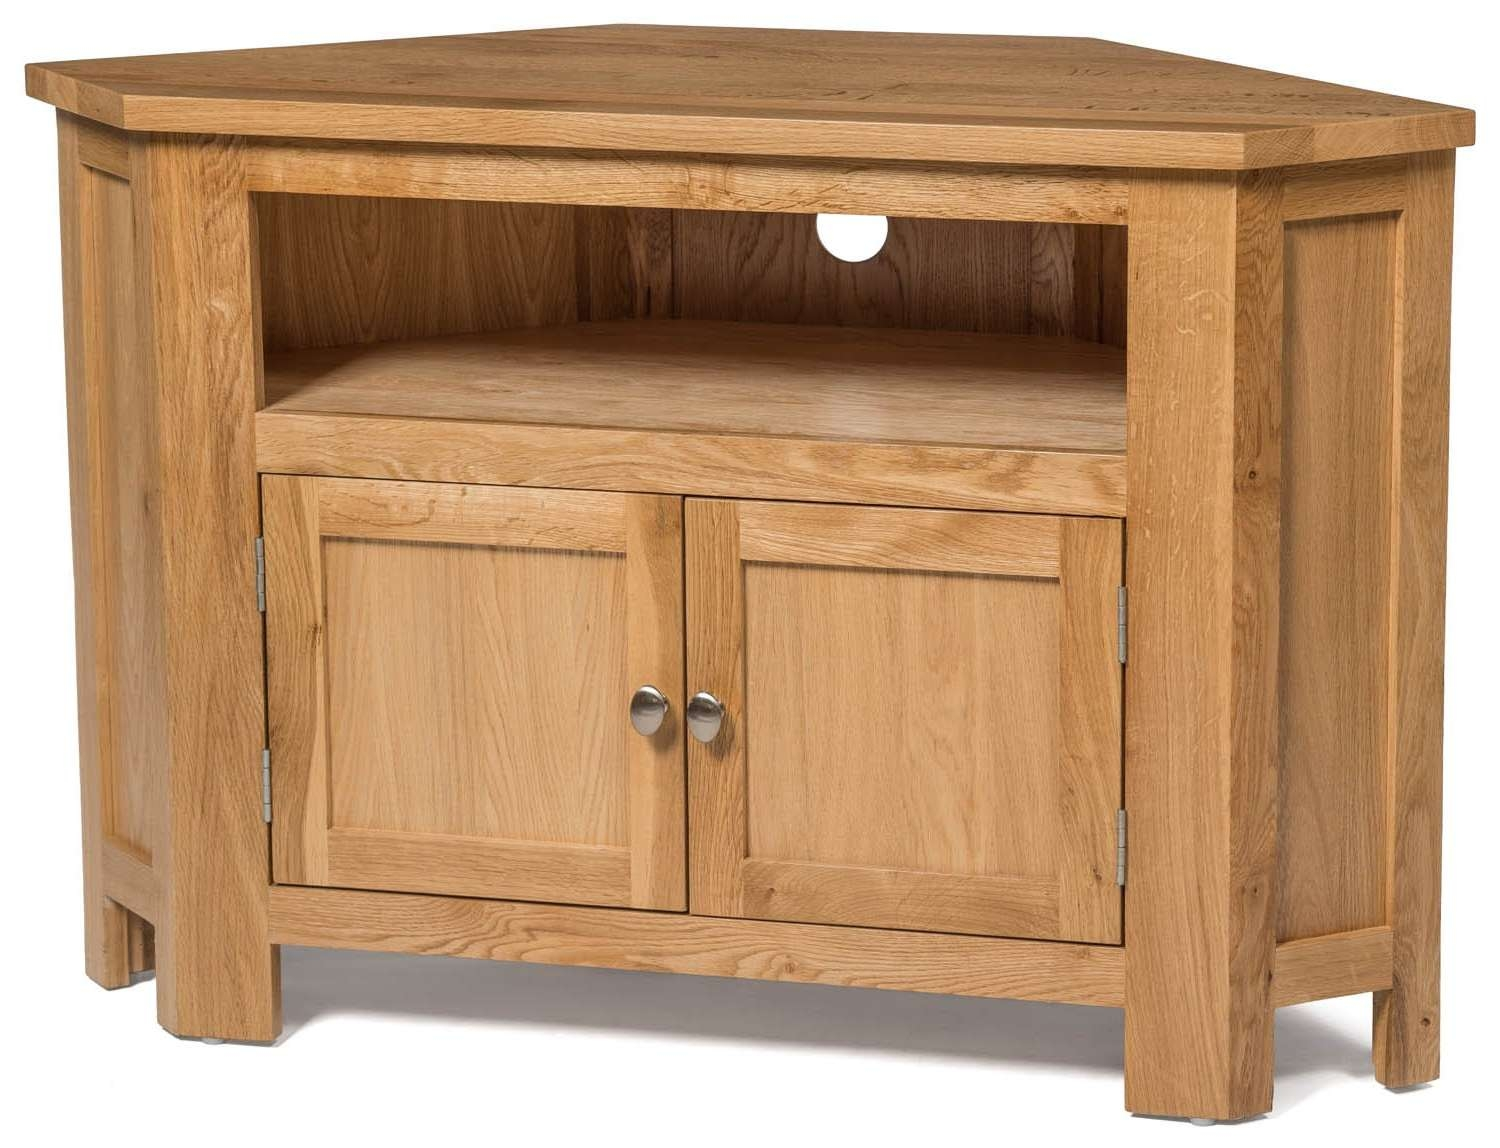 Waverly Oak 2 Door Corner Tv Stand Unit | Hallowood Pertaining To Real Wood Corner Tv Stands (View 15 of 15)